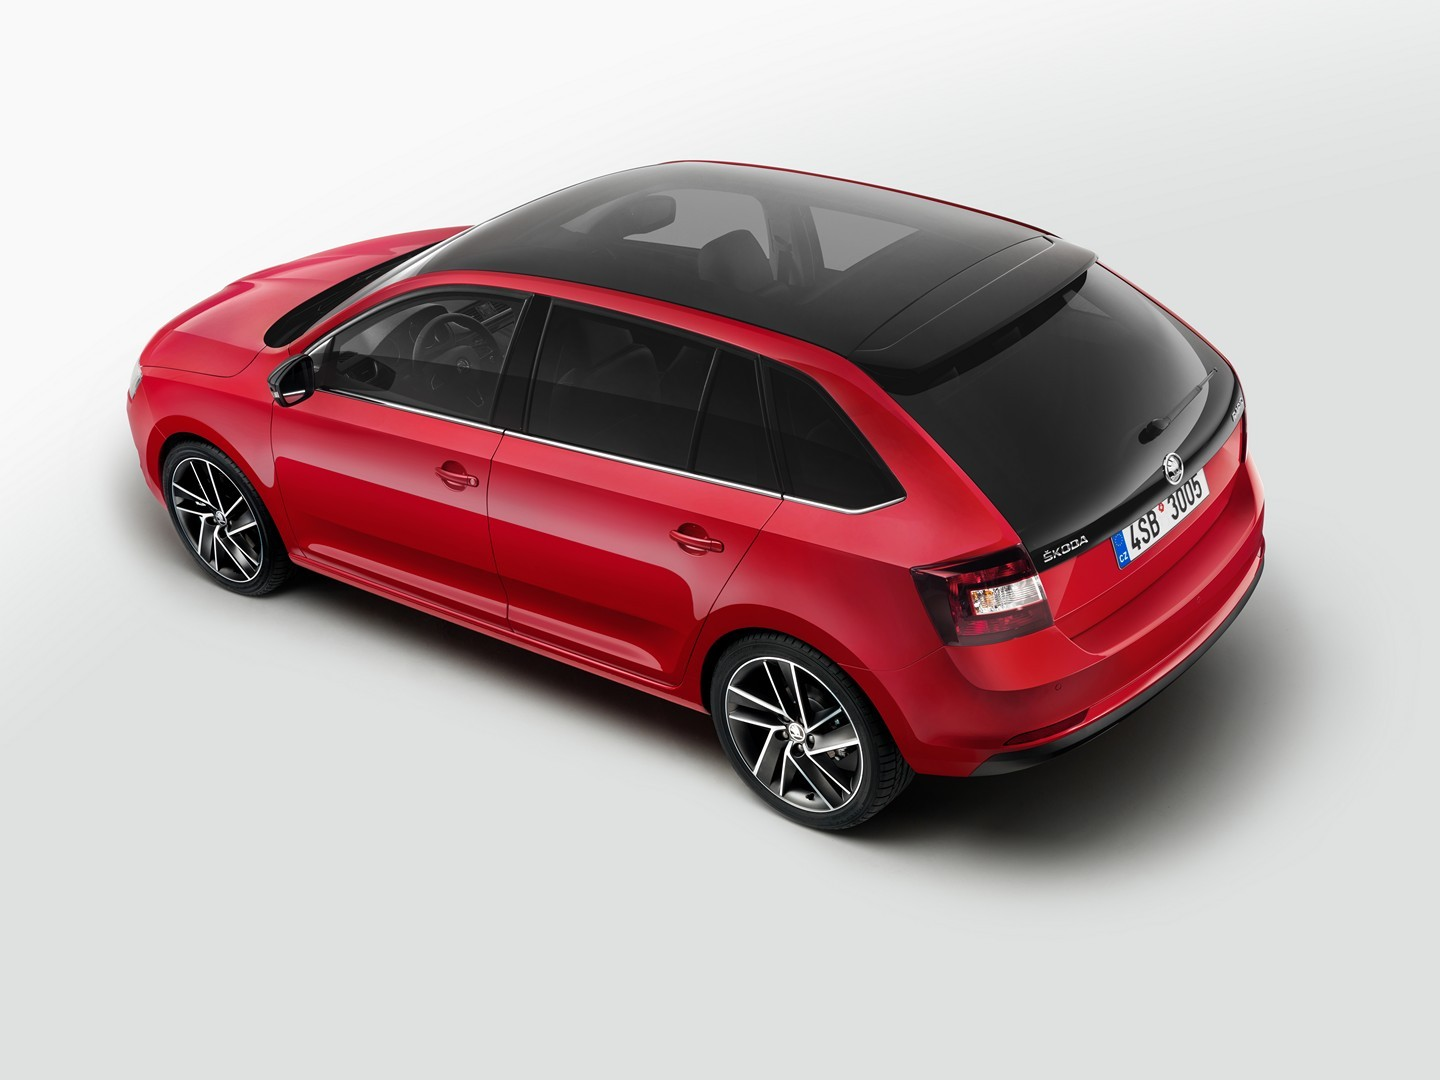 2017 skoda rapid and rapid spaceback facelift revealed get 1 0 tsi engines autoevolution. Black Bedroom Furniture Sets. Home Design Ideas